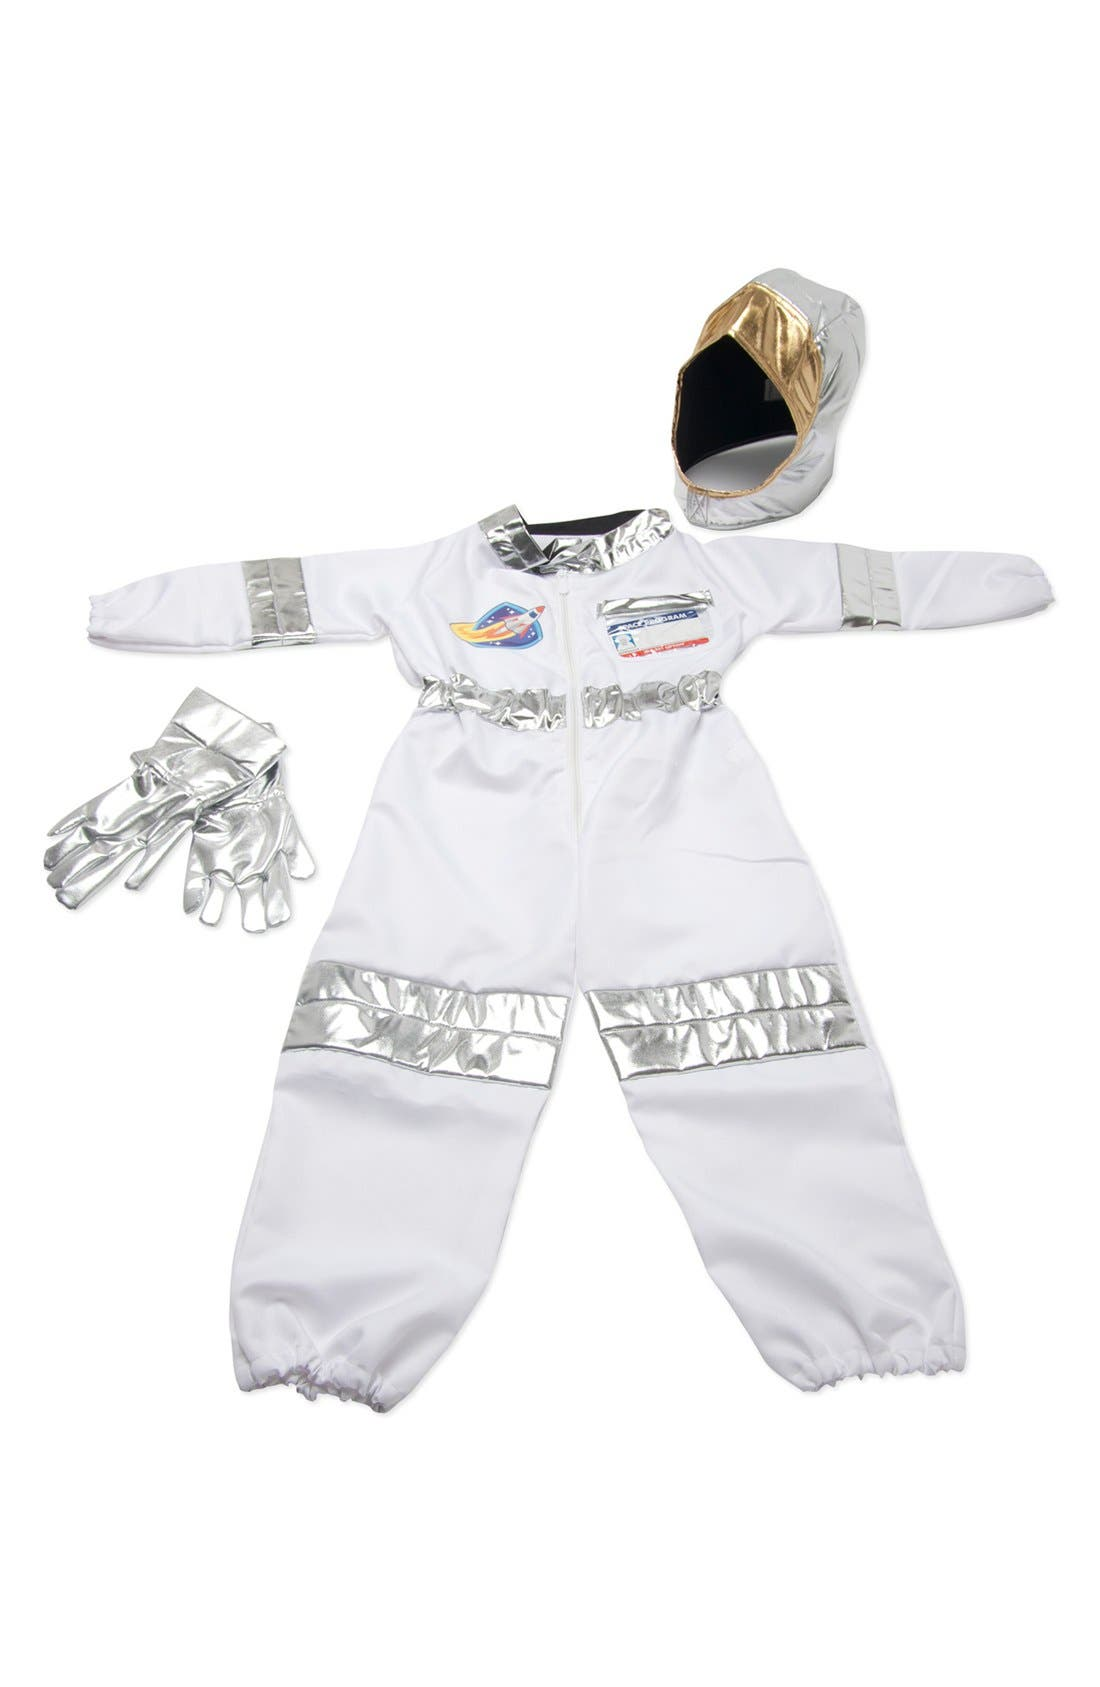 Astronaut Role Play Set,                             Alternate thumbnail 3, color,                             Metallic Silver